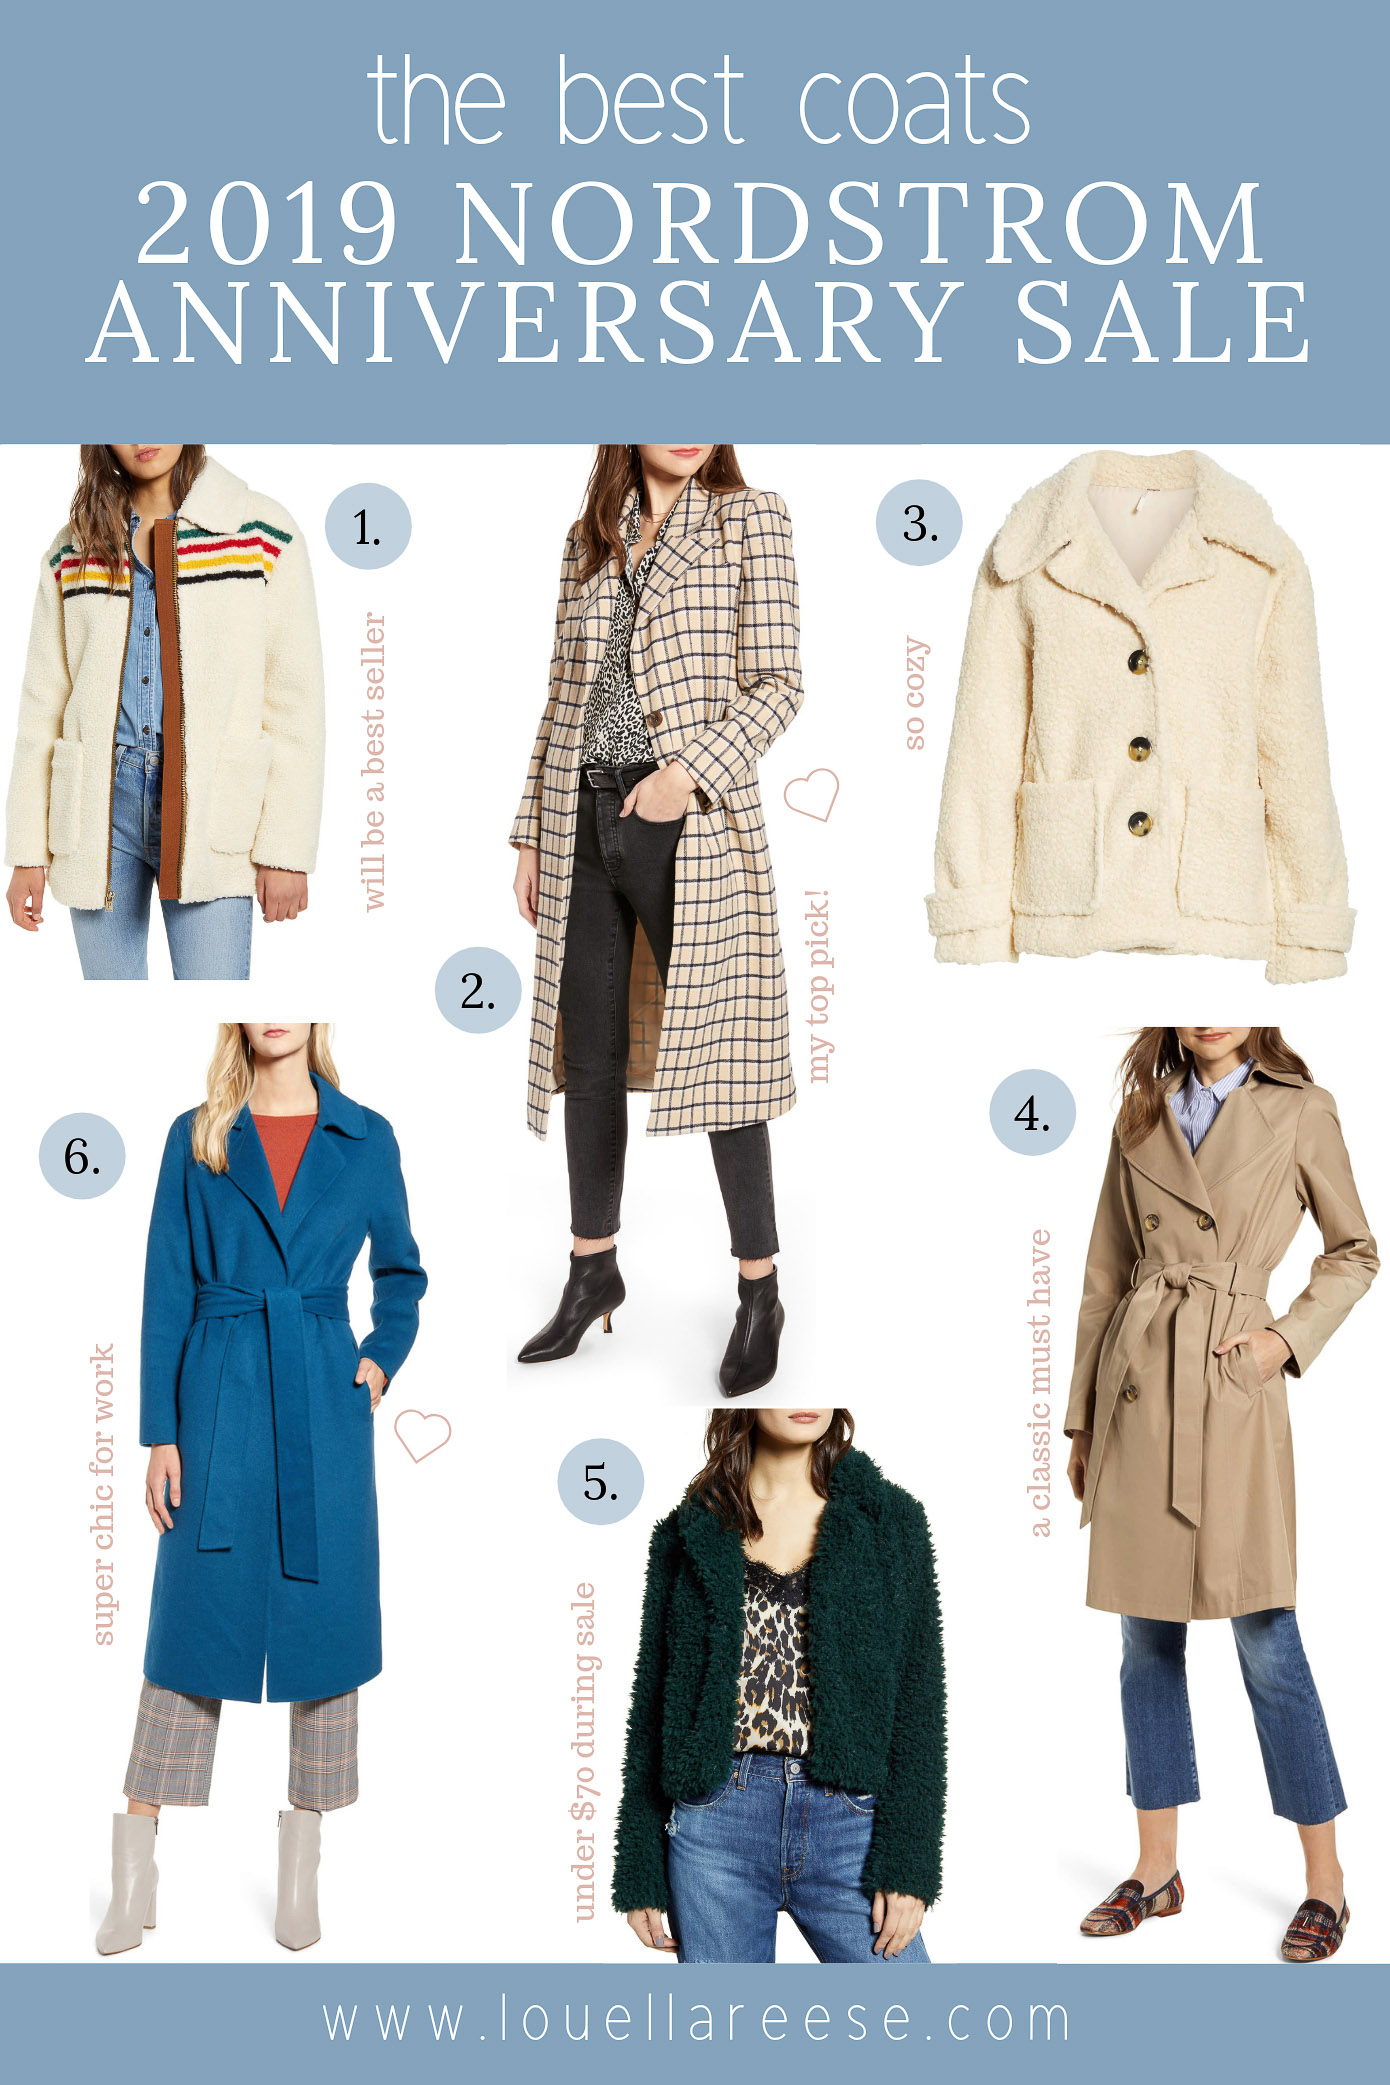 2019 Nordstrom Anniversary Sale Best Coats | The BEST Coats from the 2019 Nordstrom Anniversary Sale | Louella Reese